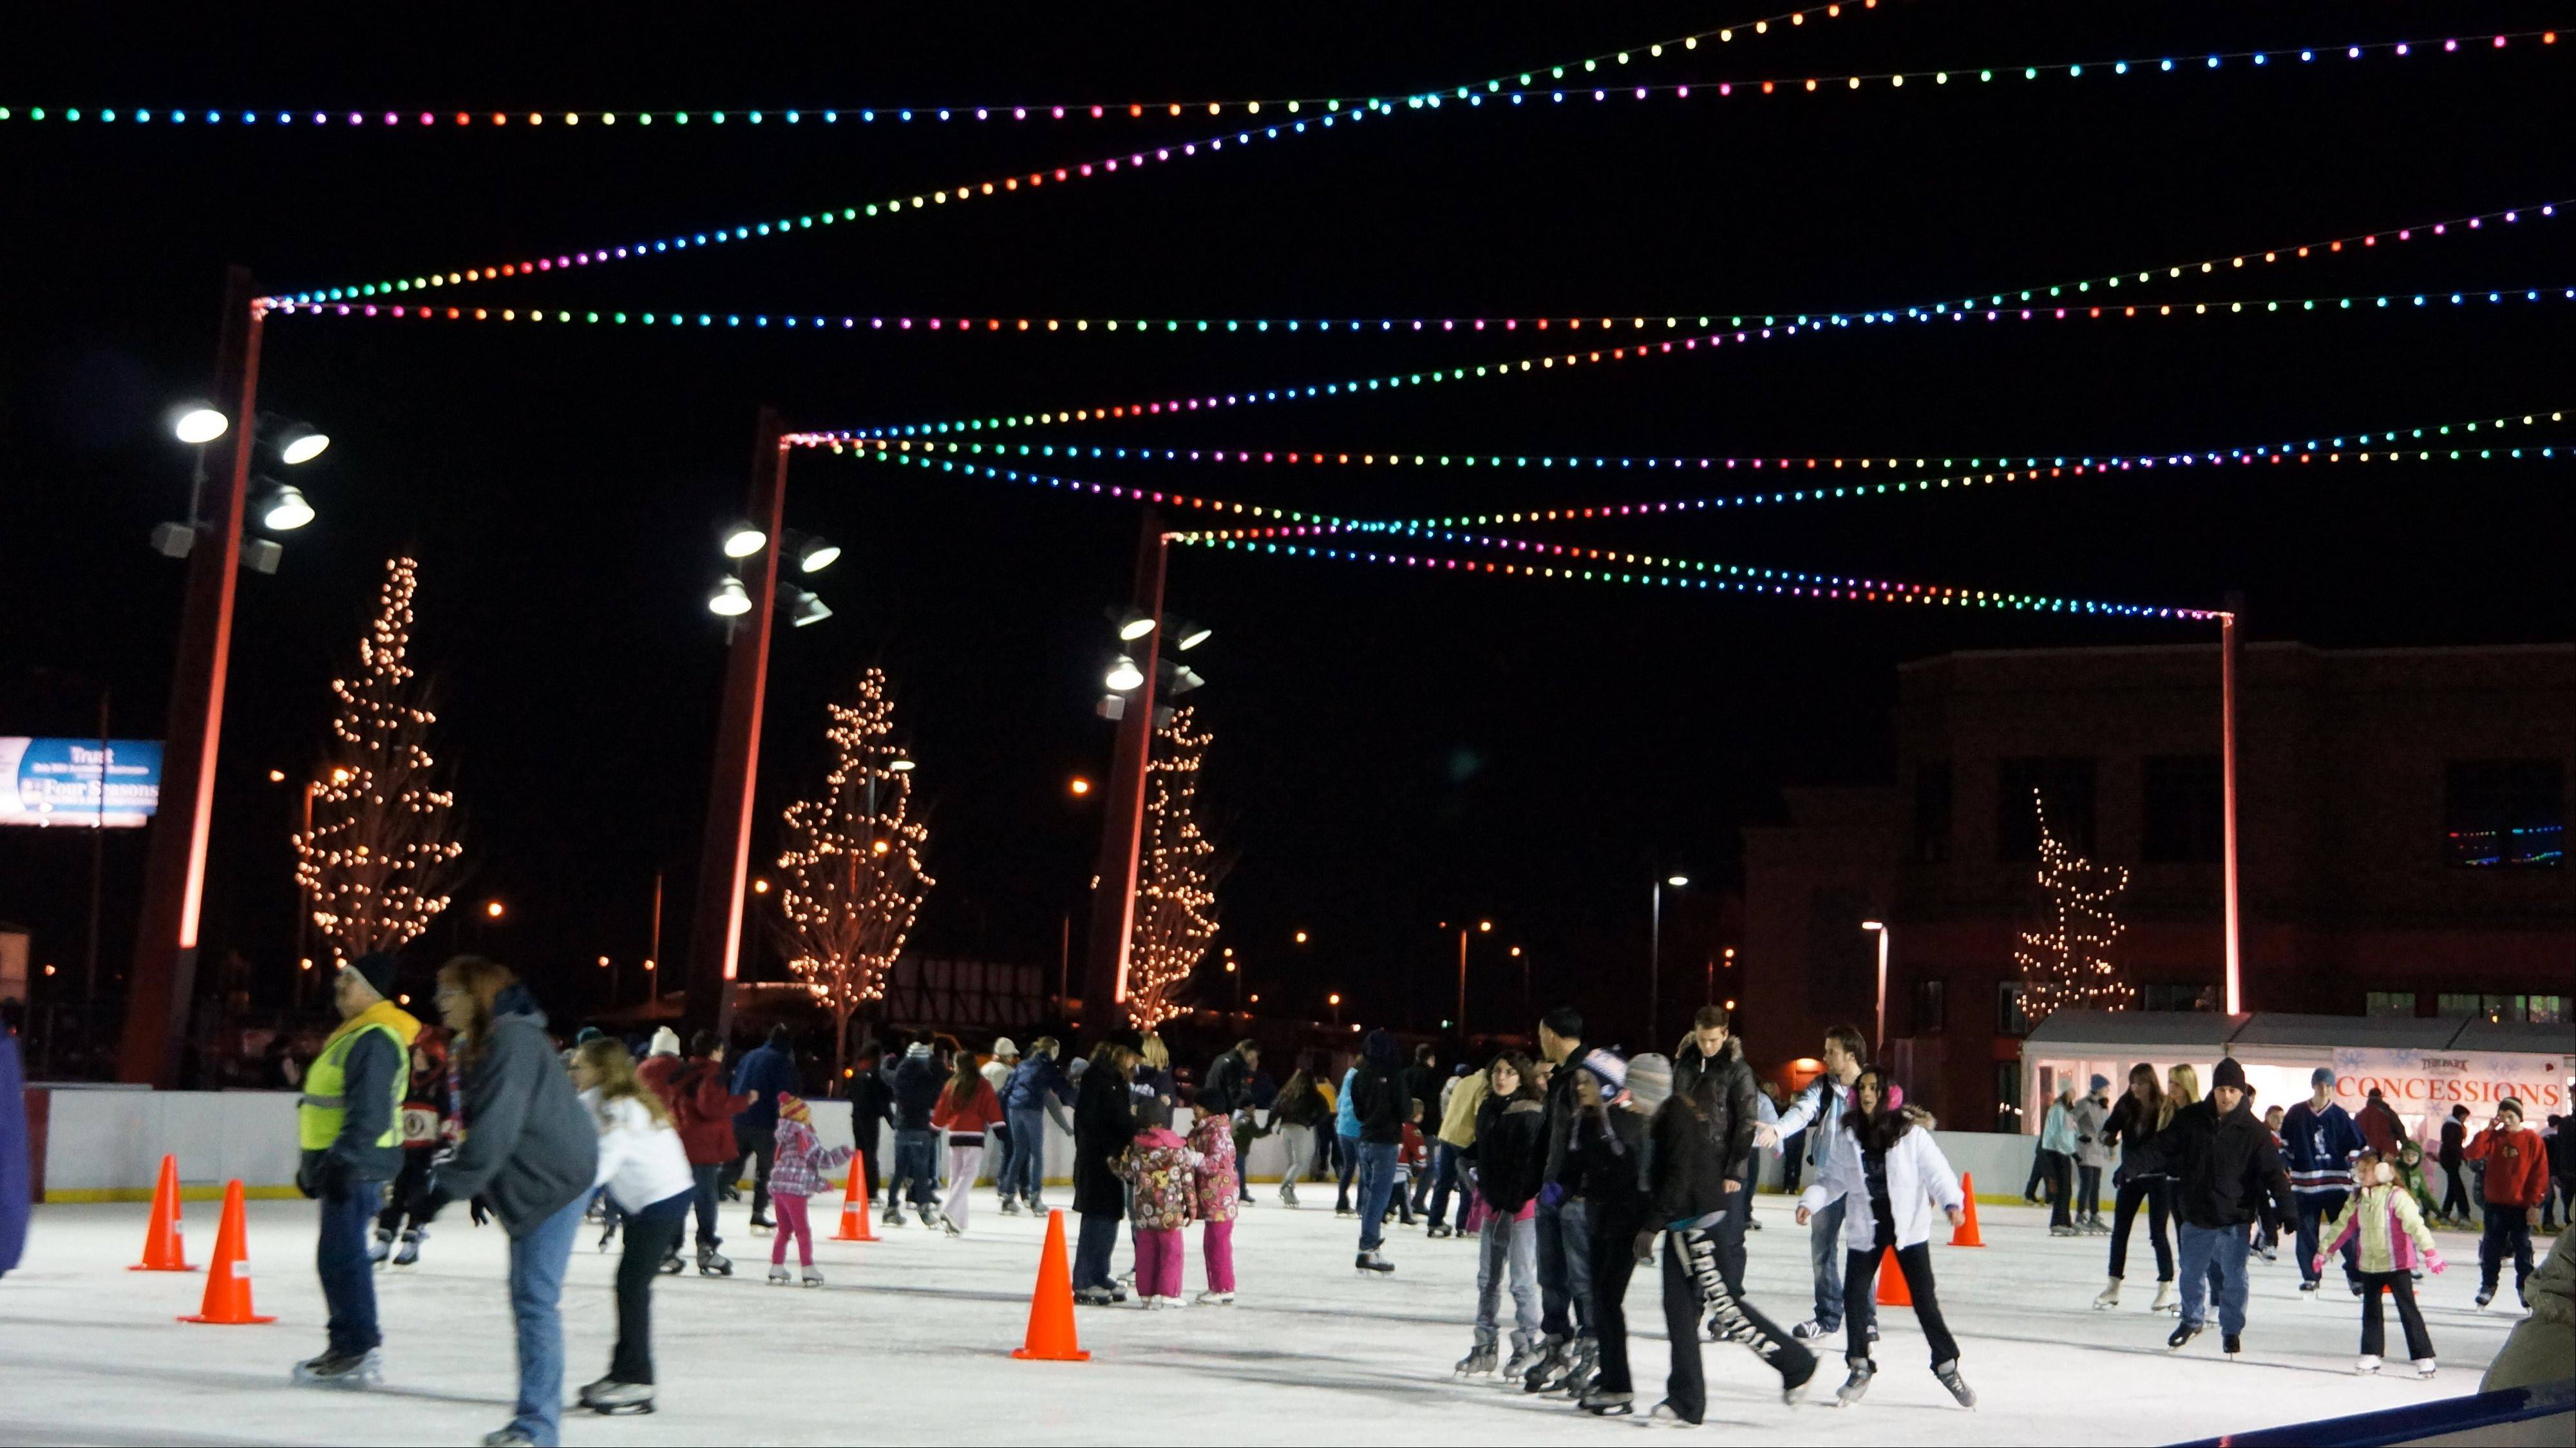 The Park at Rosemont opens its free public skating rink on Friday, Nov. 23.